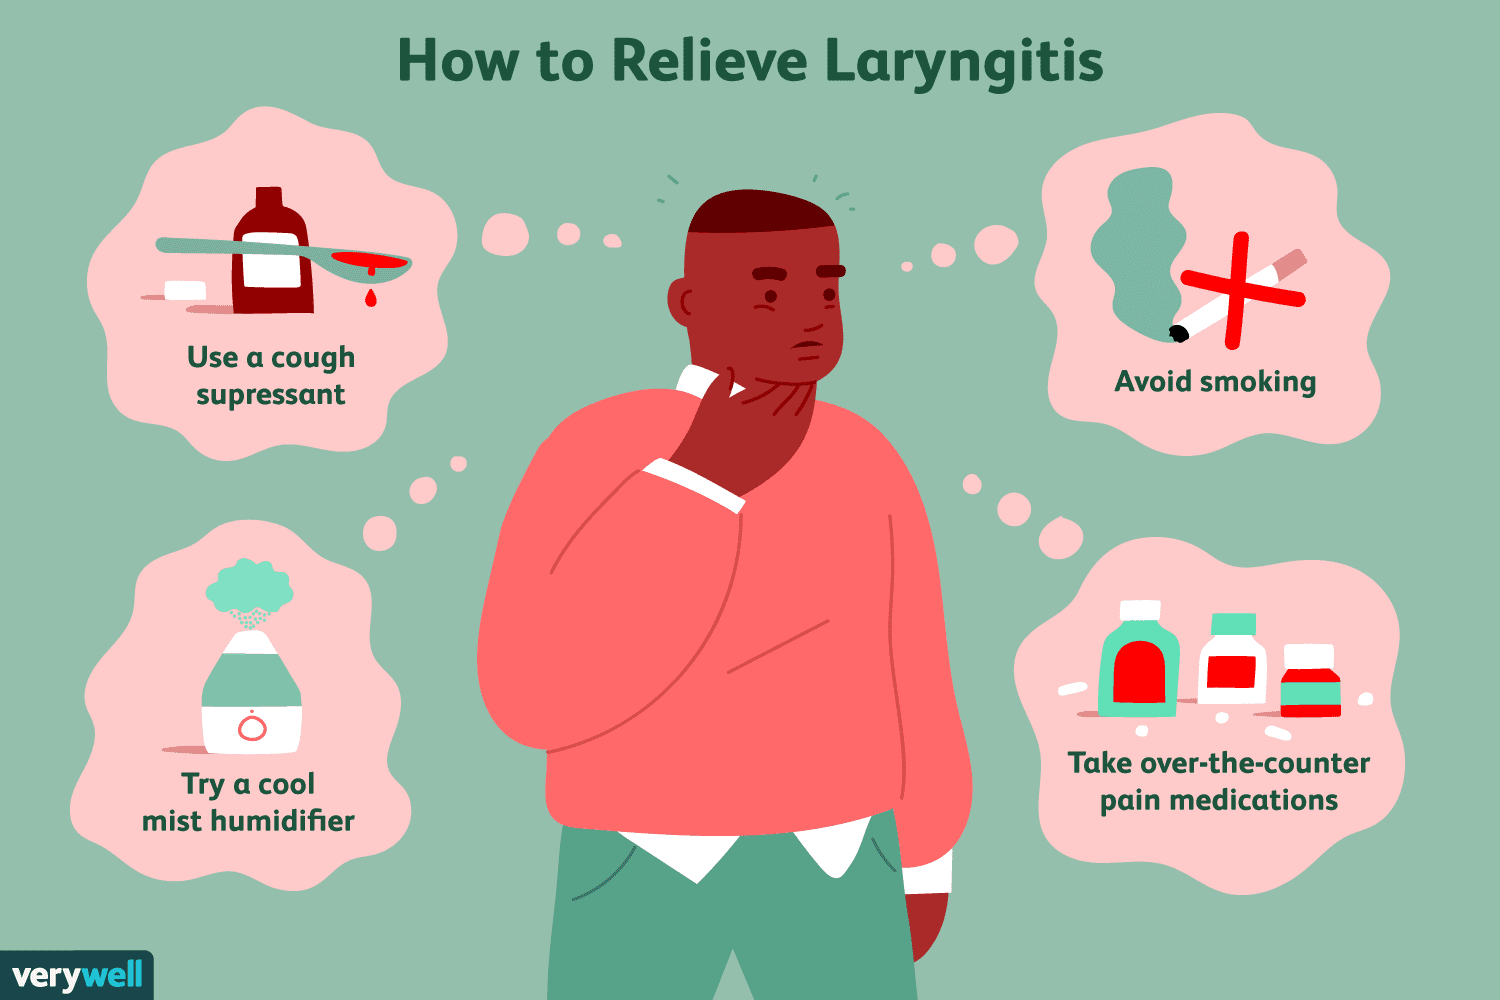 Laryngitis: Symptoms, Causes, and Treatment